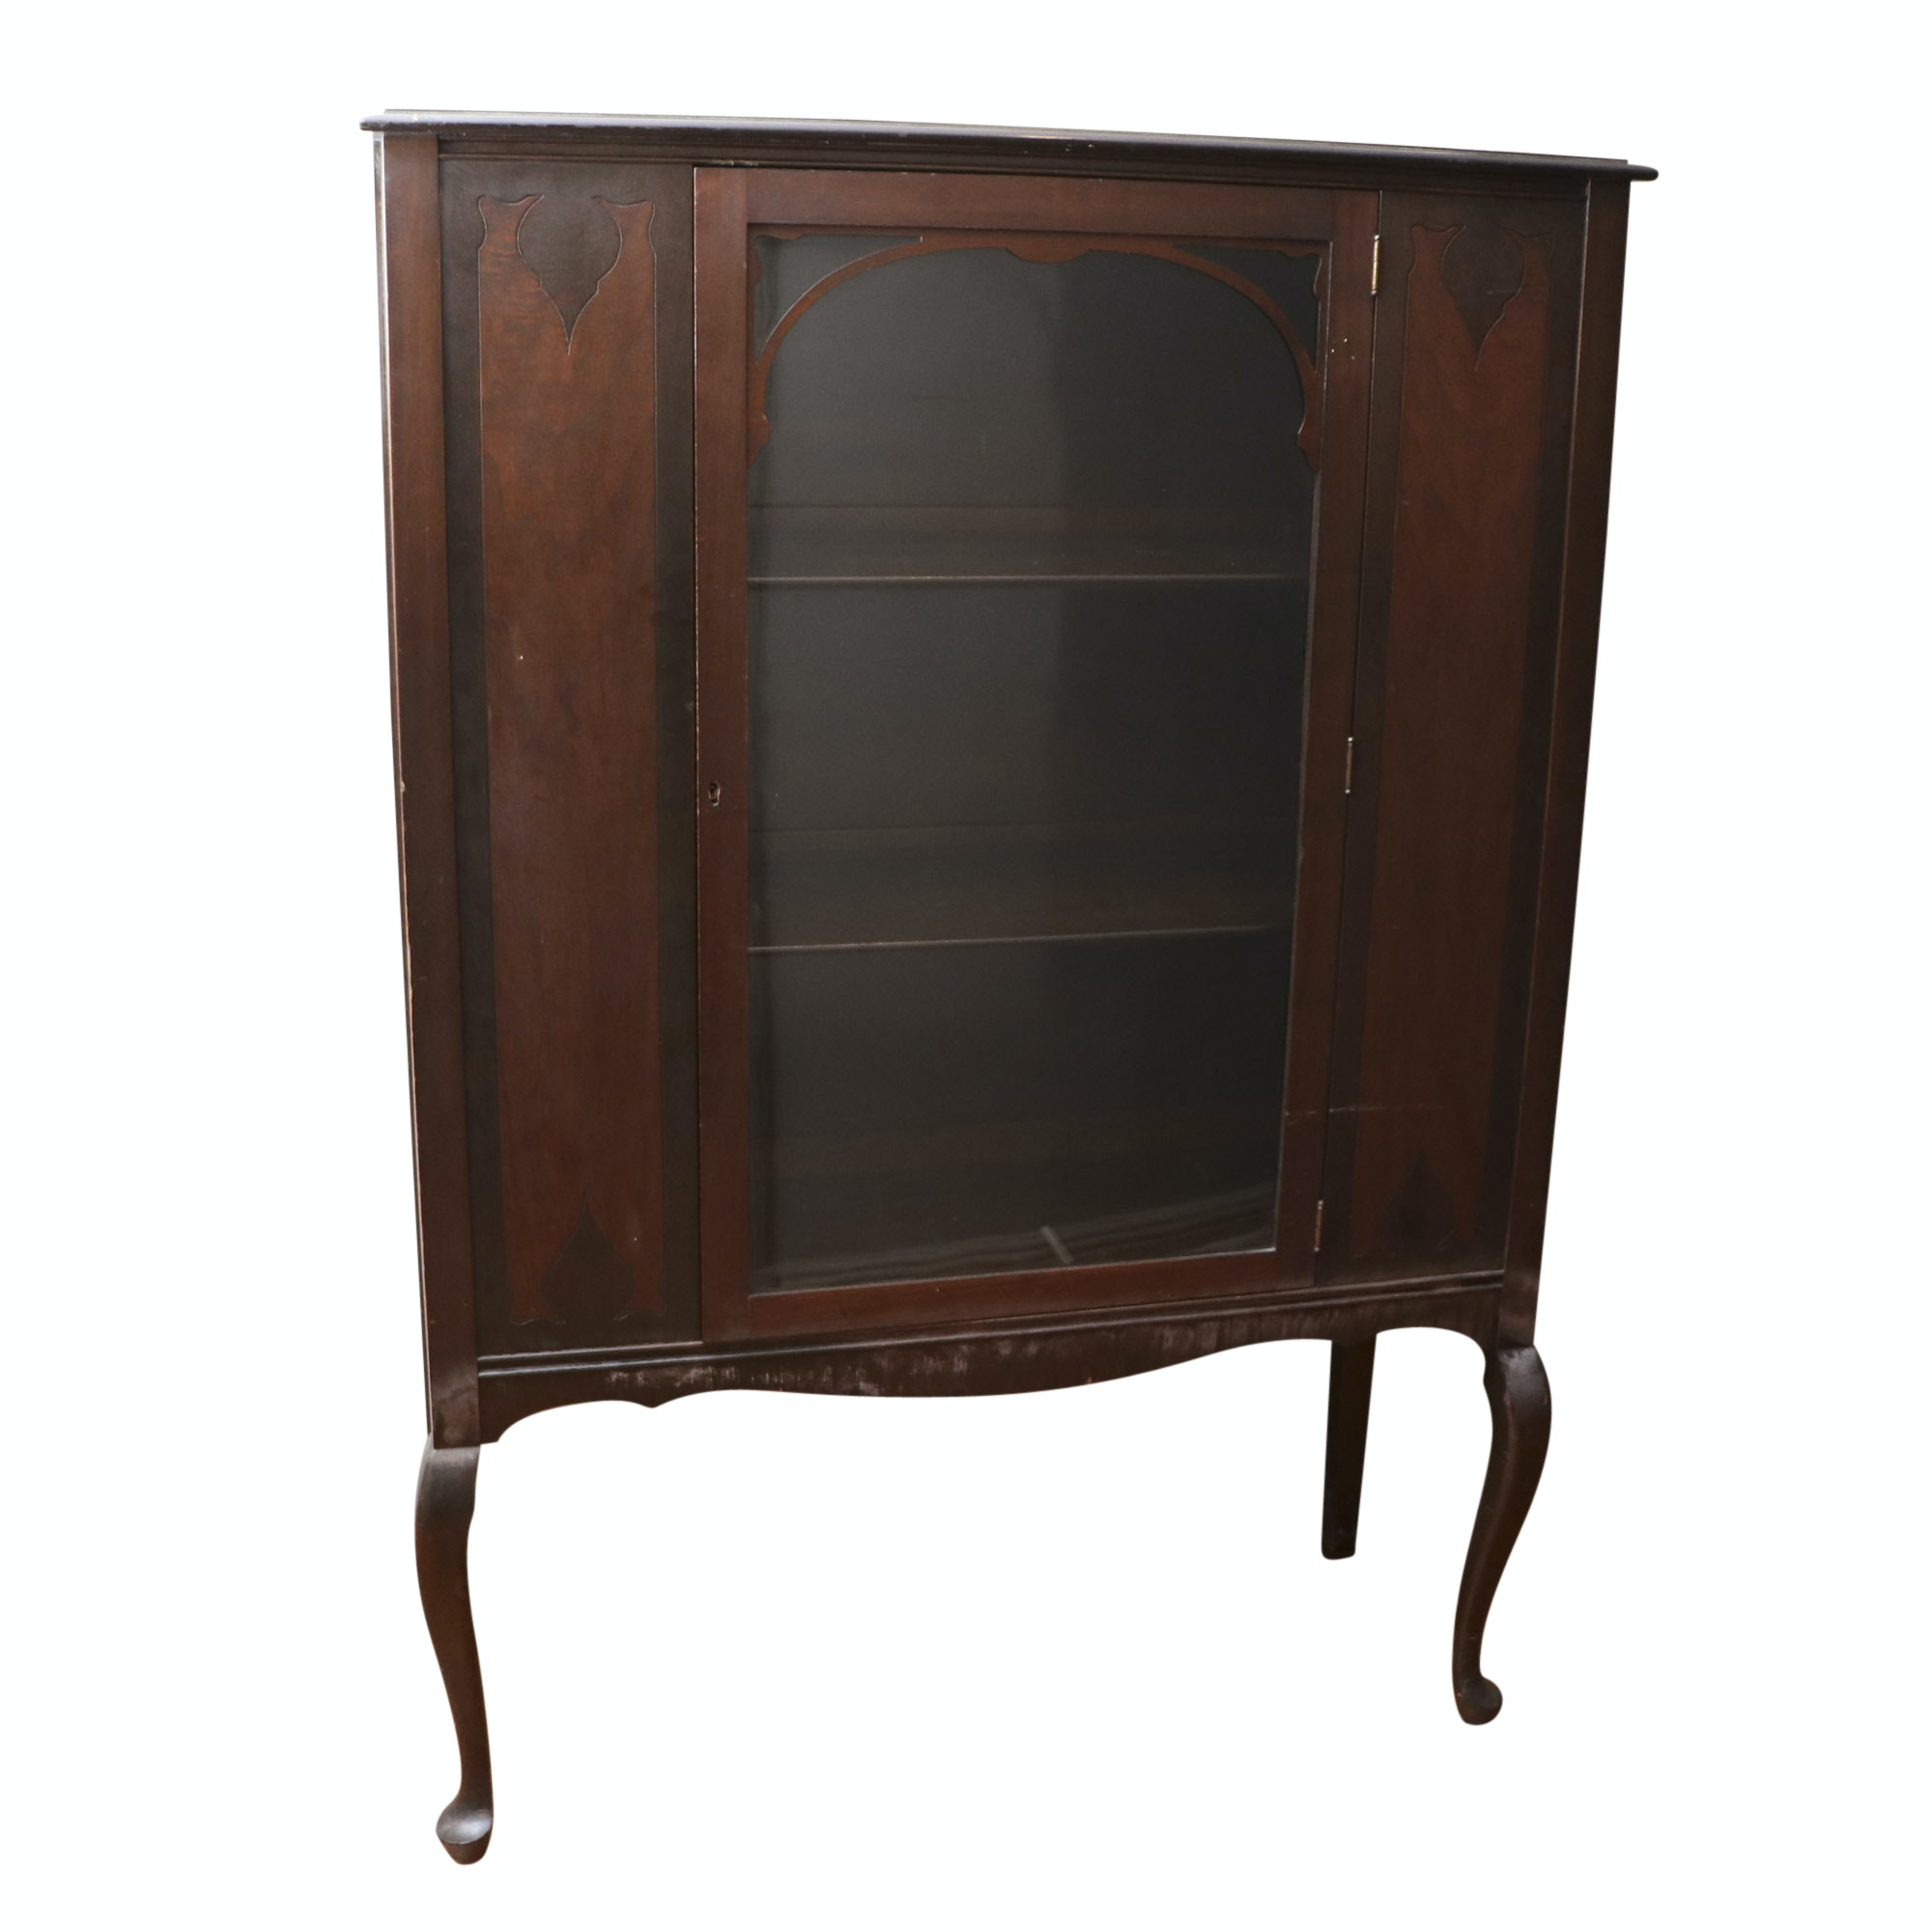 Vintage Walnut China Cabinet by Wemyss Furniture